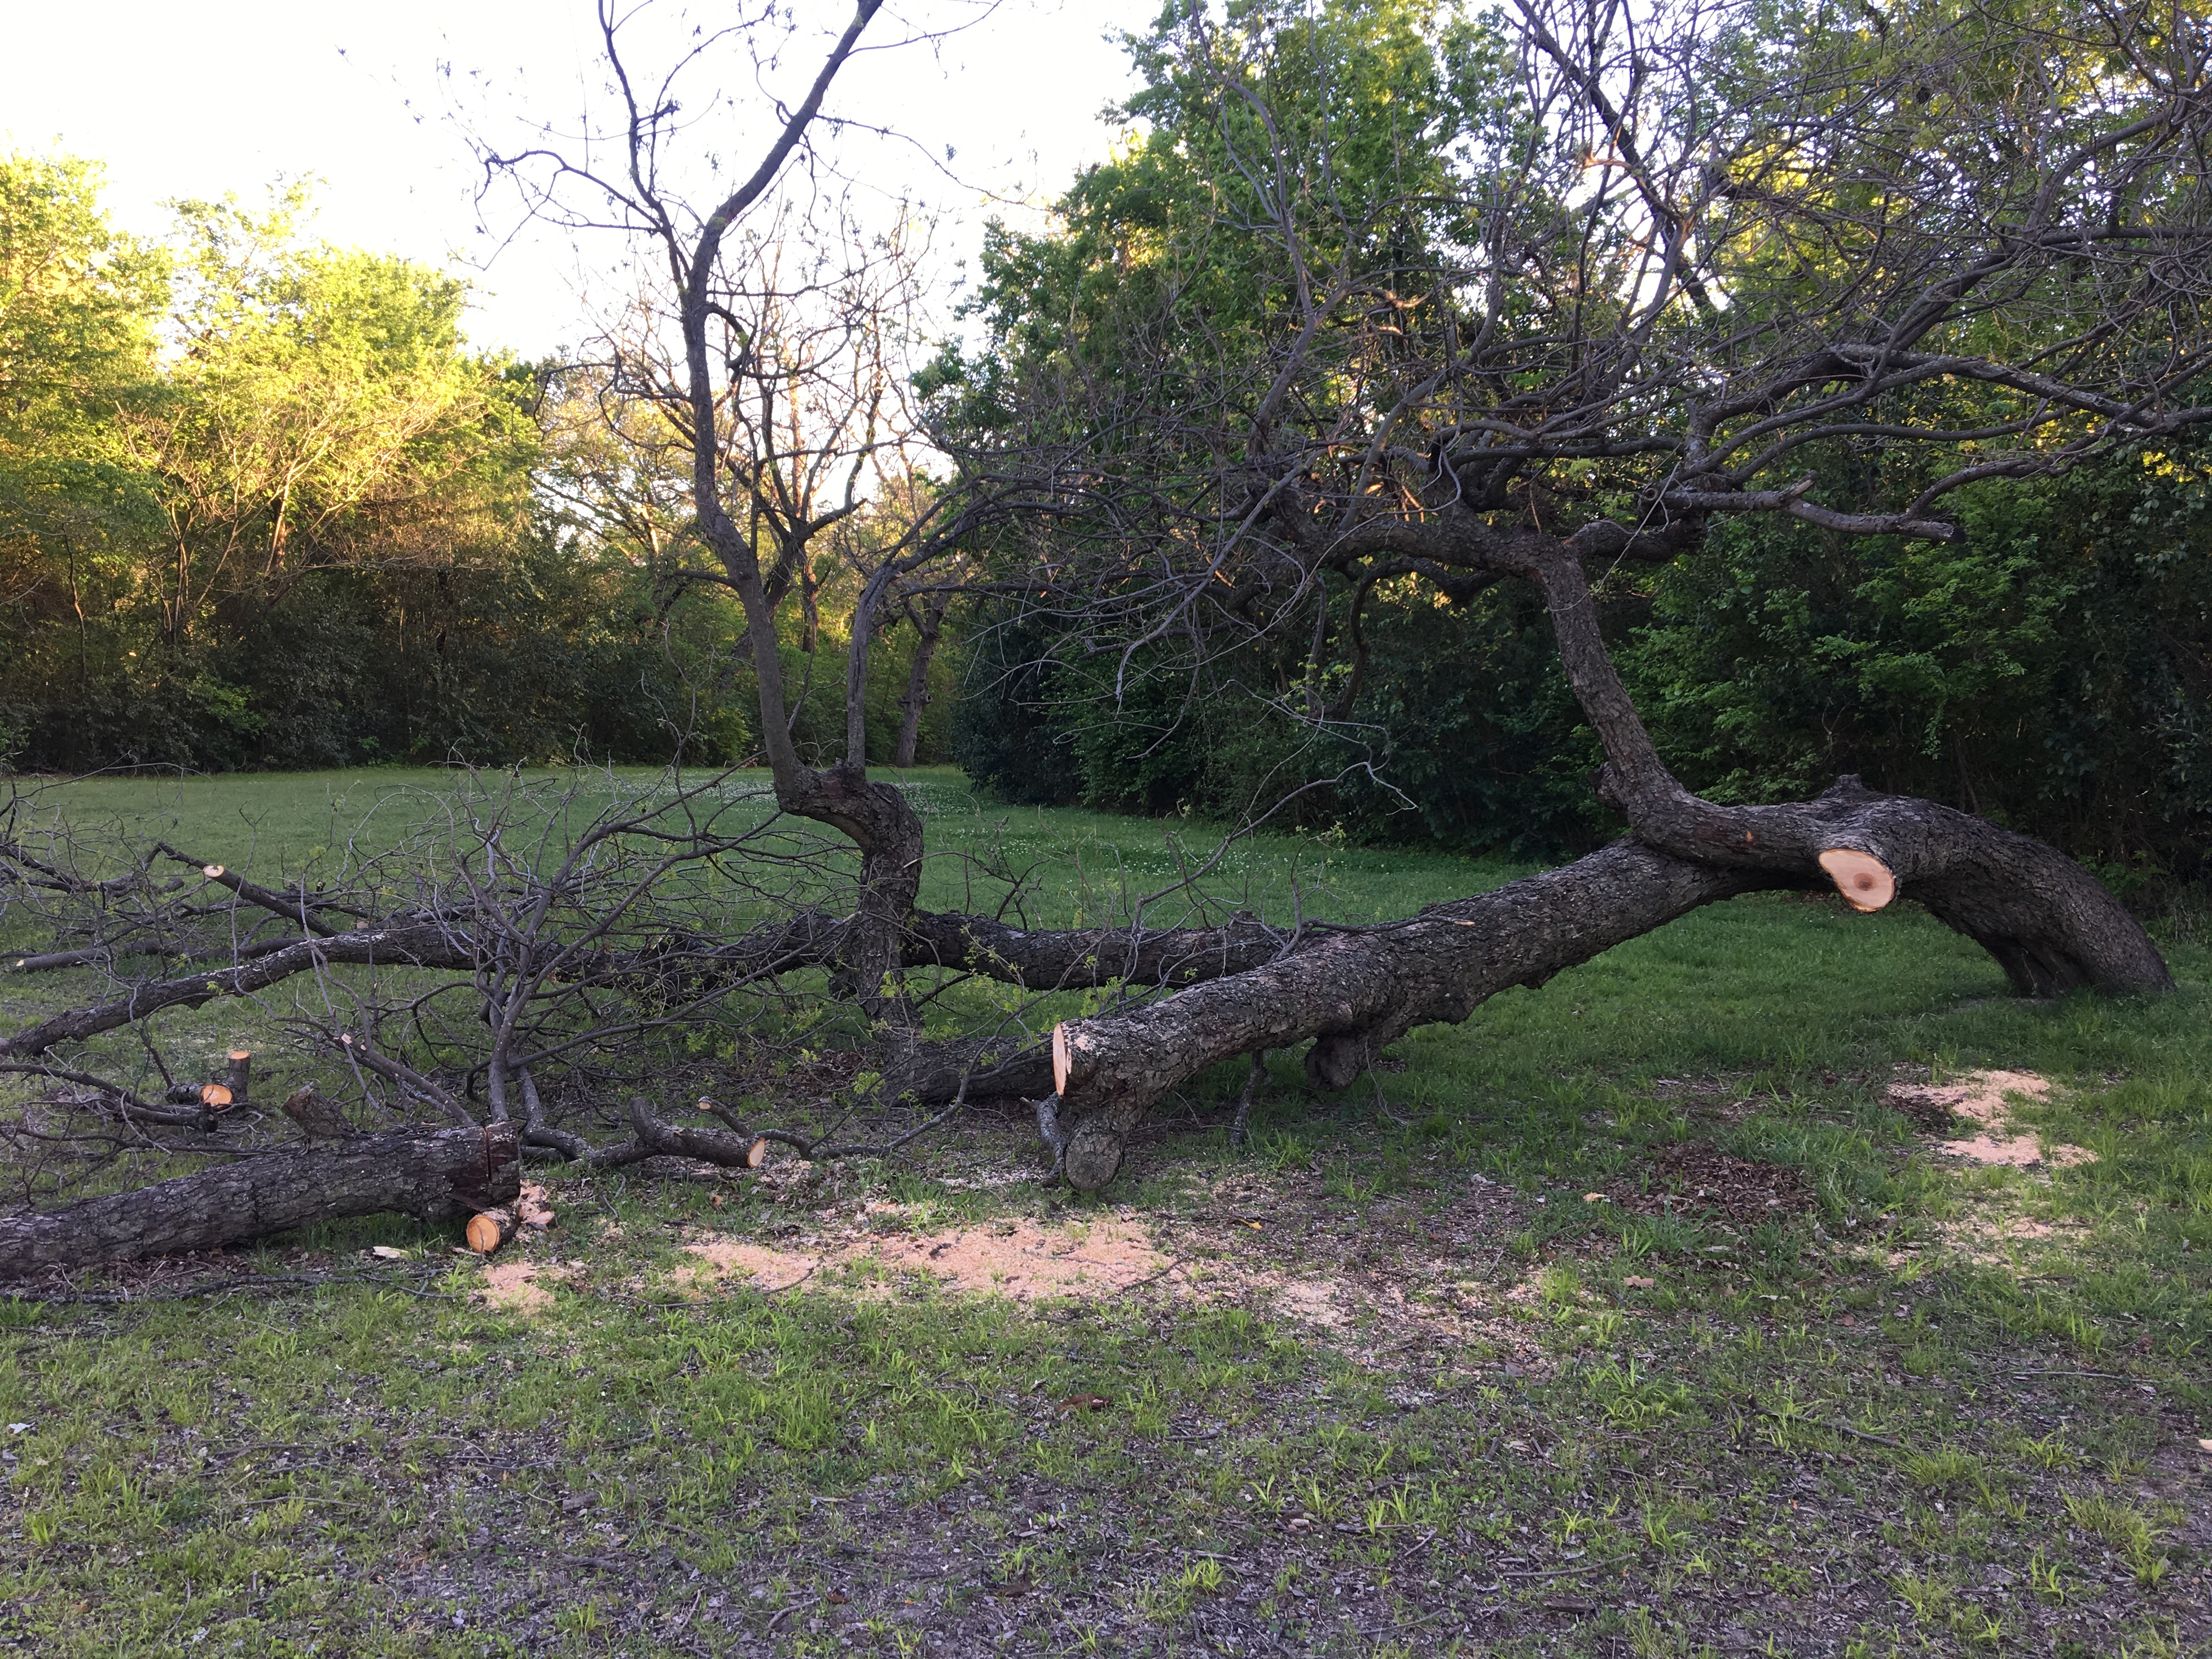 The old pecan tree, after the man cut it up